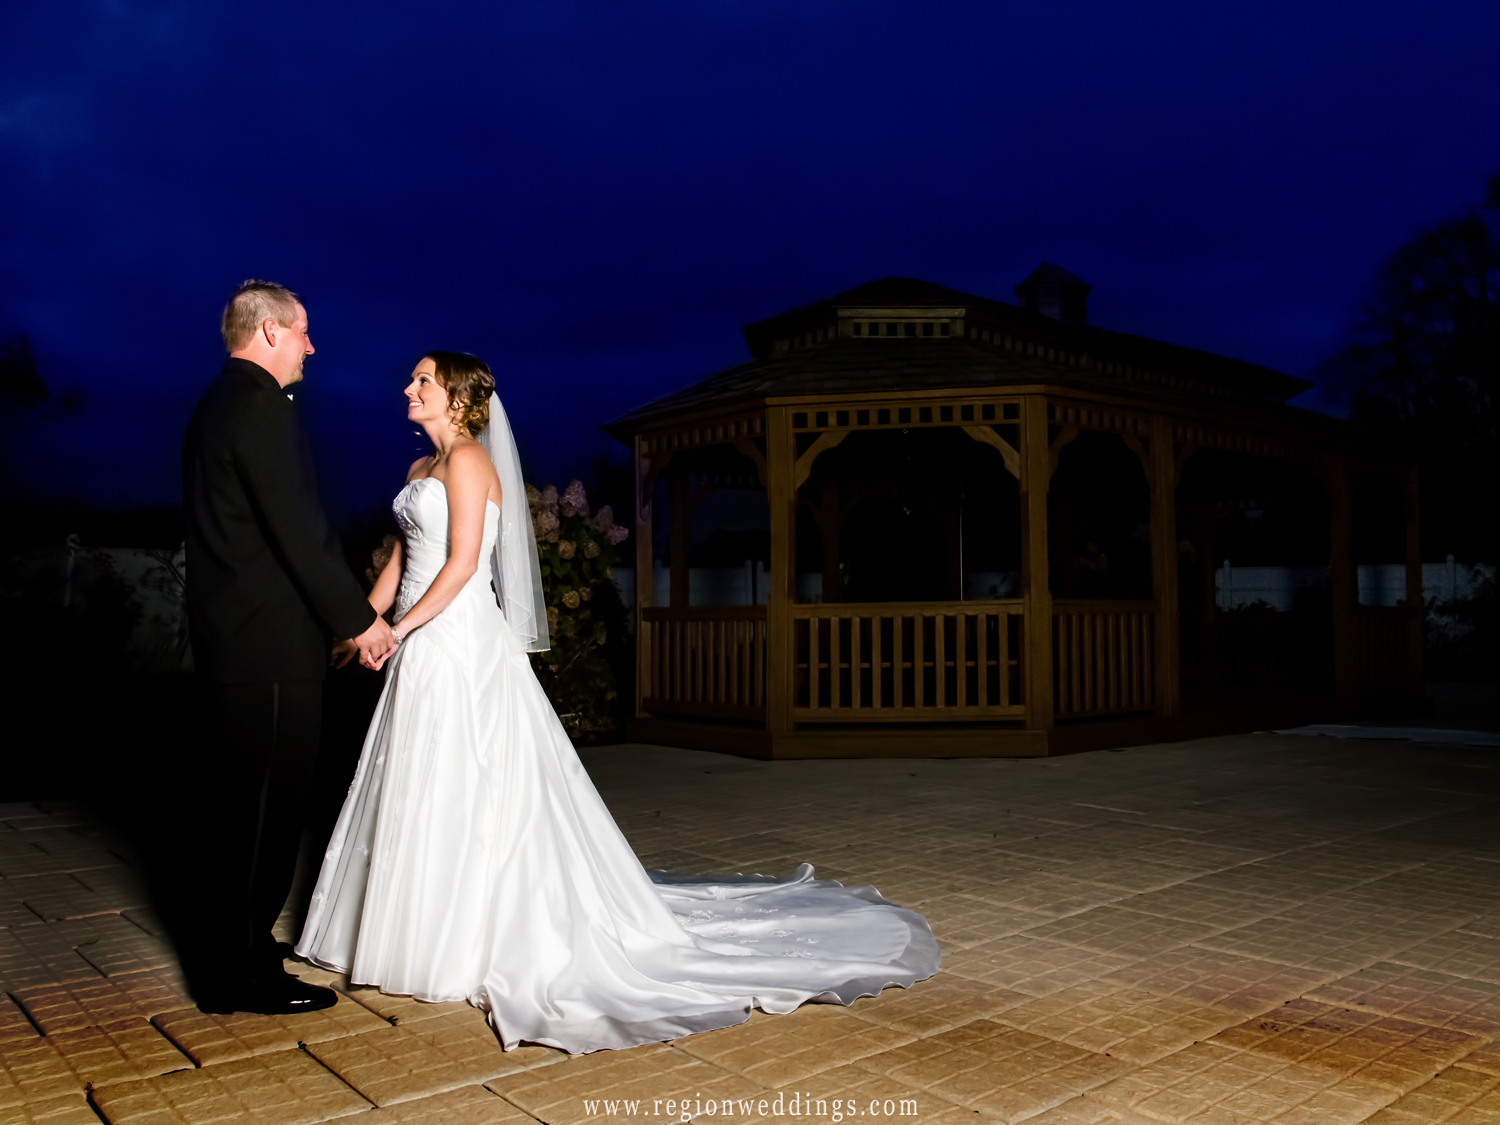 The bride and groom stand outside the gazebo at The Patrician in Schererville, Indiana during the twilight hour.